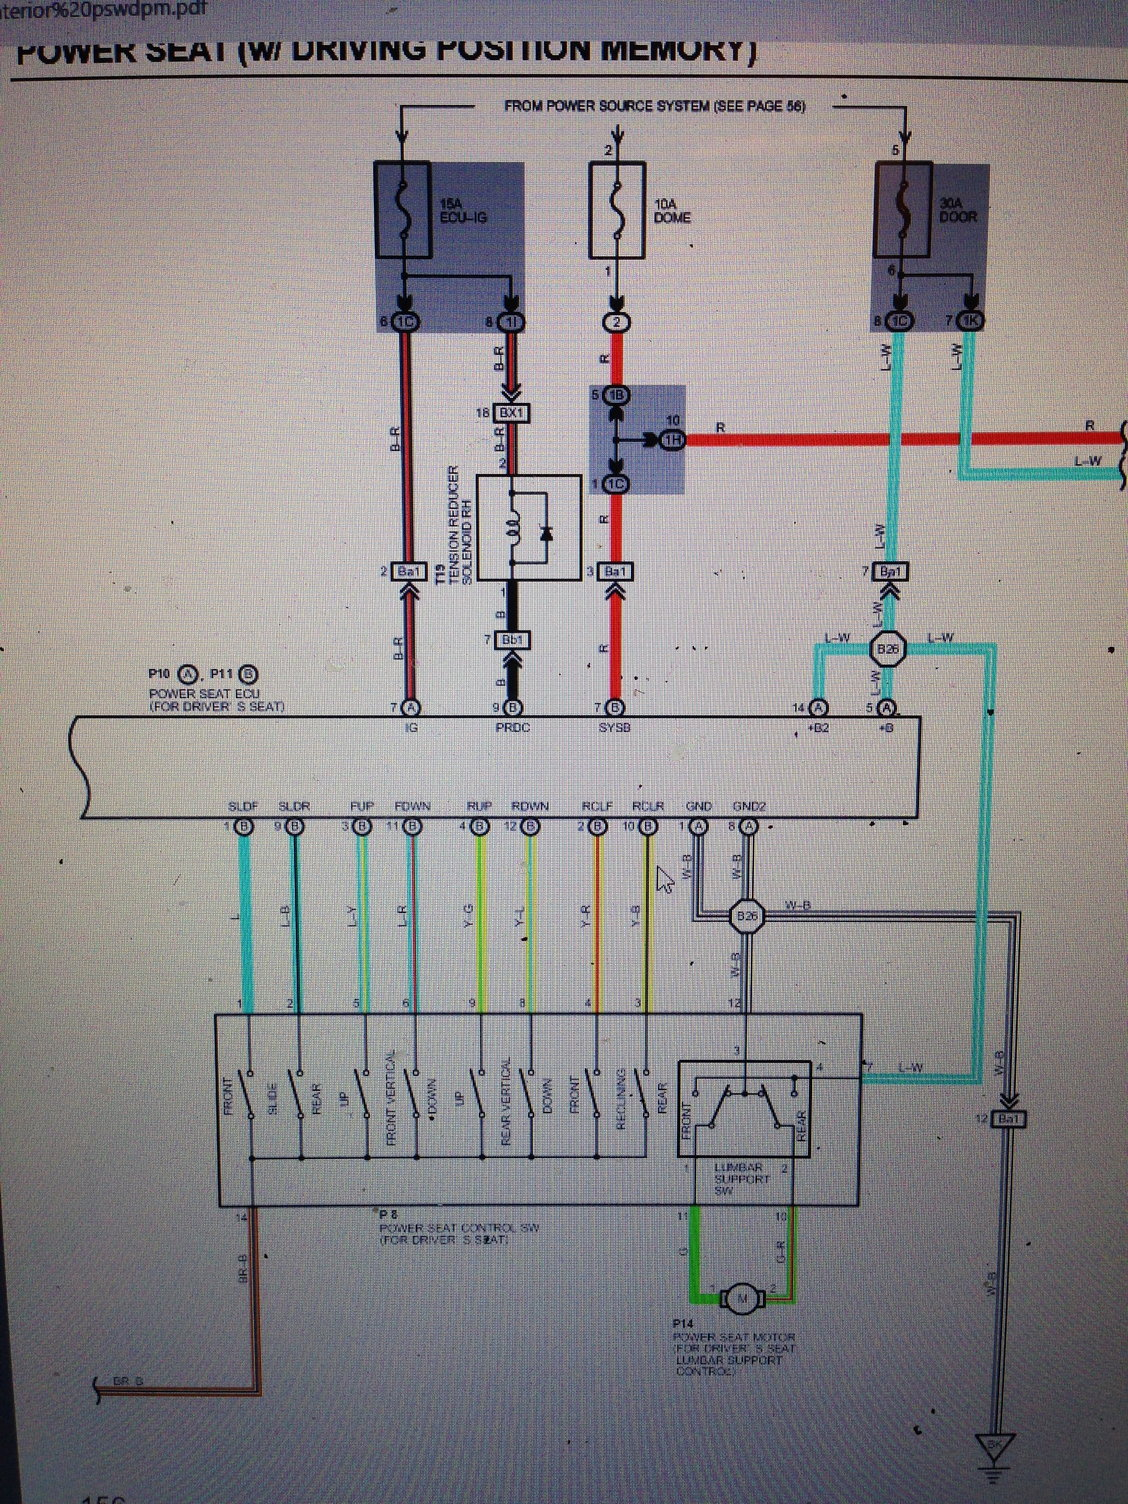 ✦DIAGRAM BASED✦ Power Seat Wiring Diagram 92 Lexus Sc 300 COMPLETED DIAGRAM  BASE Sc 300 -  JEFFREY.LANG.KENNETH.G.SHIPLEY.3WAYSWITCHWIRINGDIAGRAM.PCINFORMI.ITDiagram Based Completed Edition - Pcinformi.it